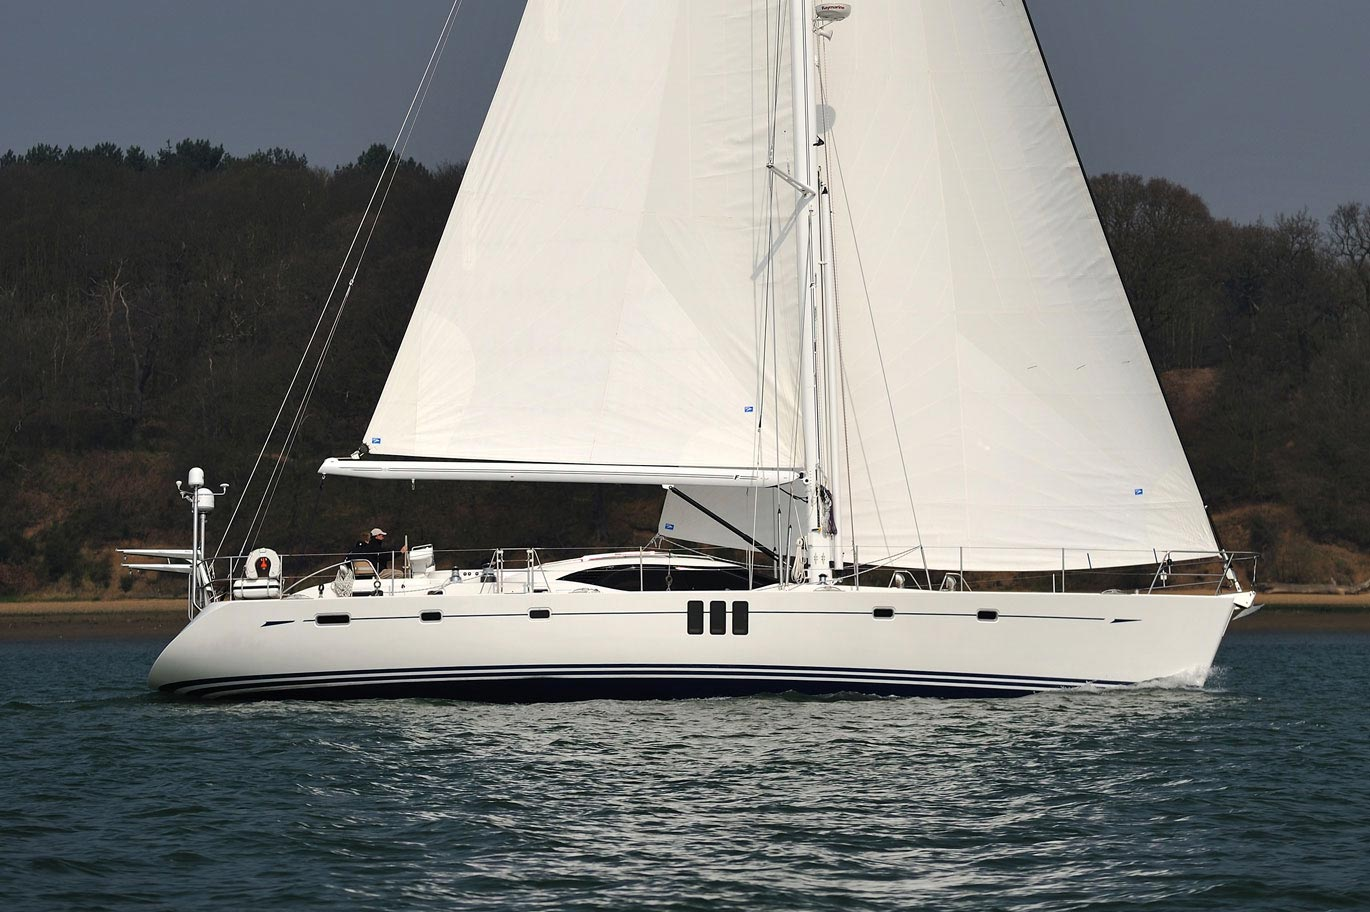 ... yachts, this spectacular Rob Humphreys designed Sailing Yacht Oyster 625 ...